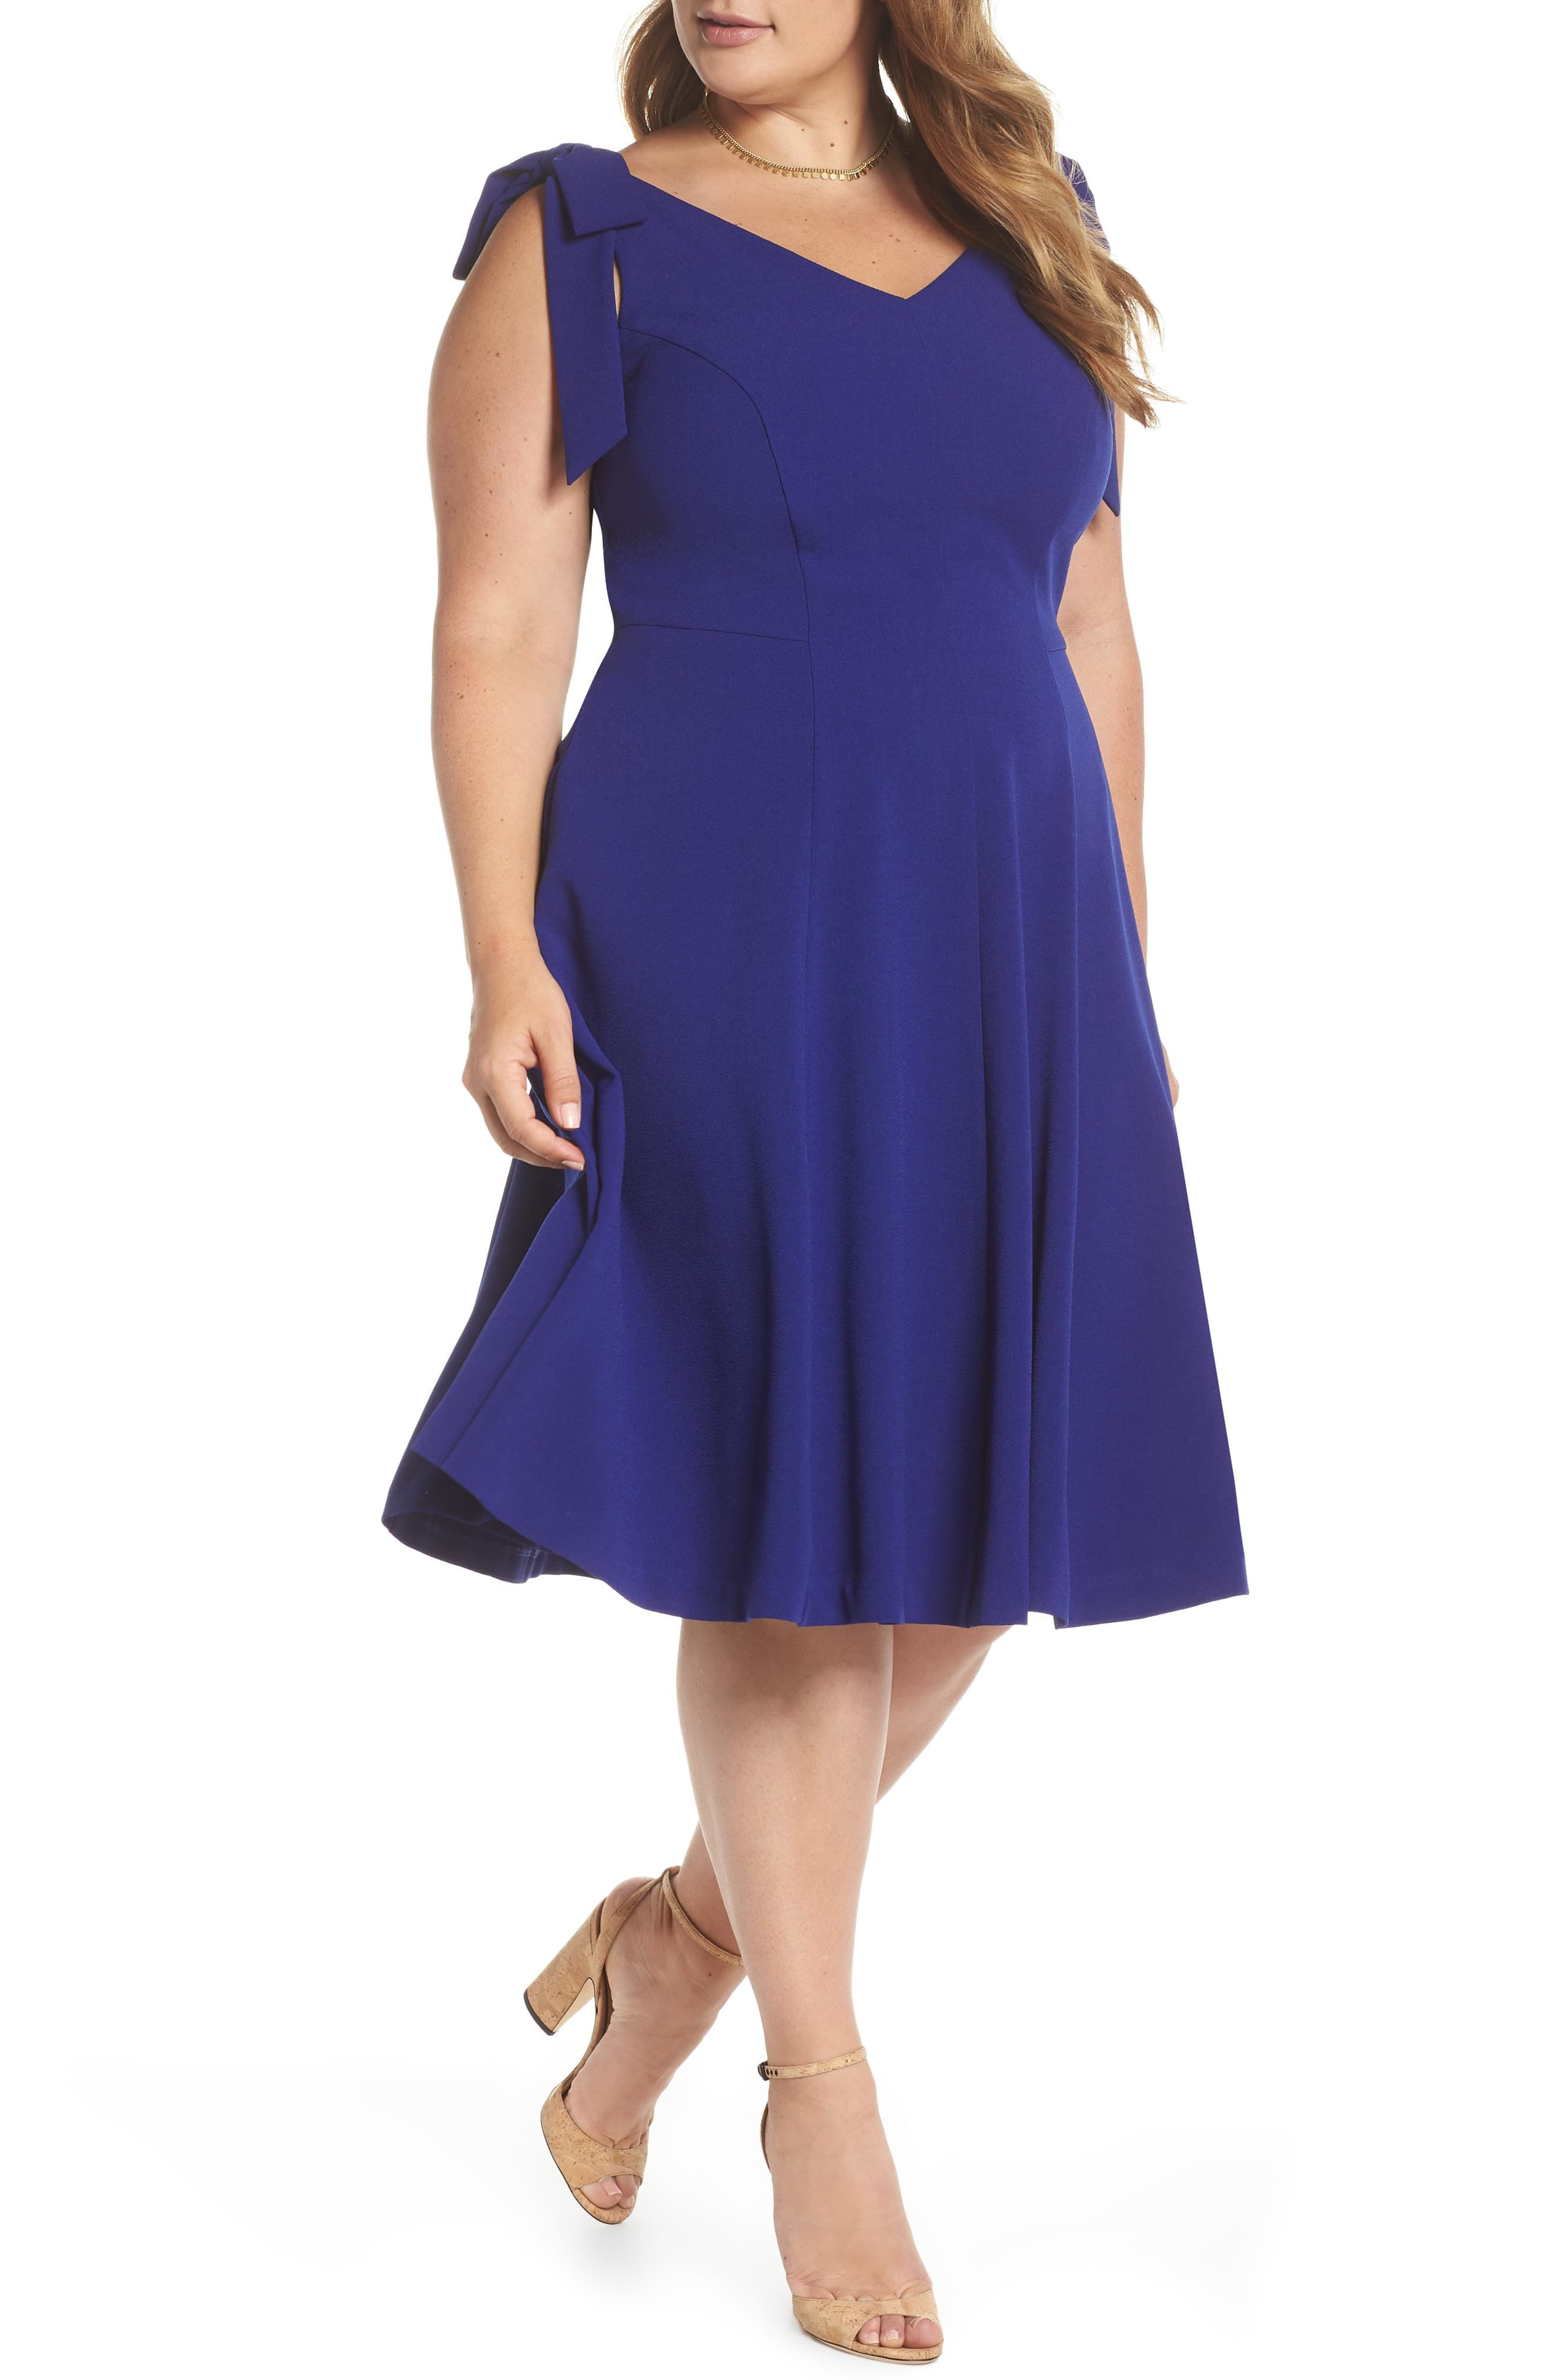 1901 TieShoulder Fit & Flare Dress Flattering plus size